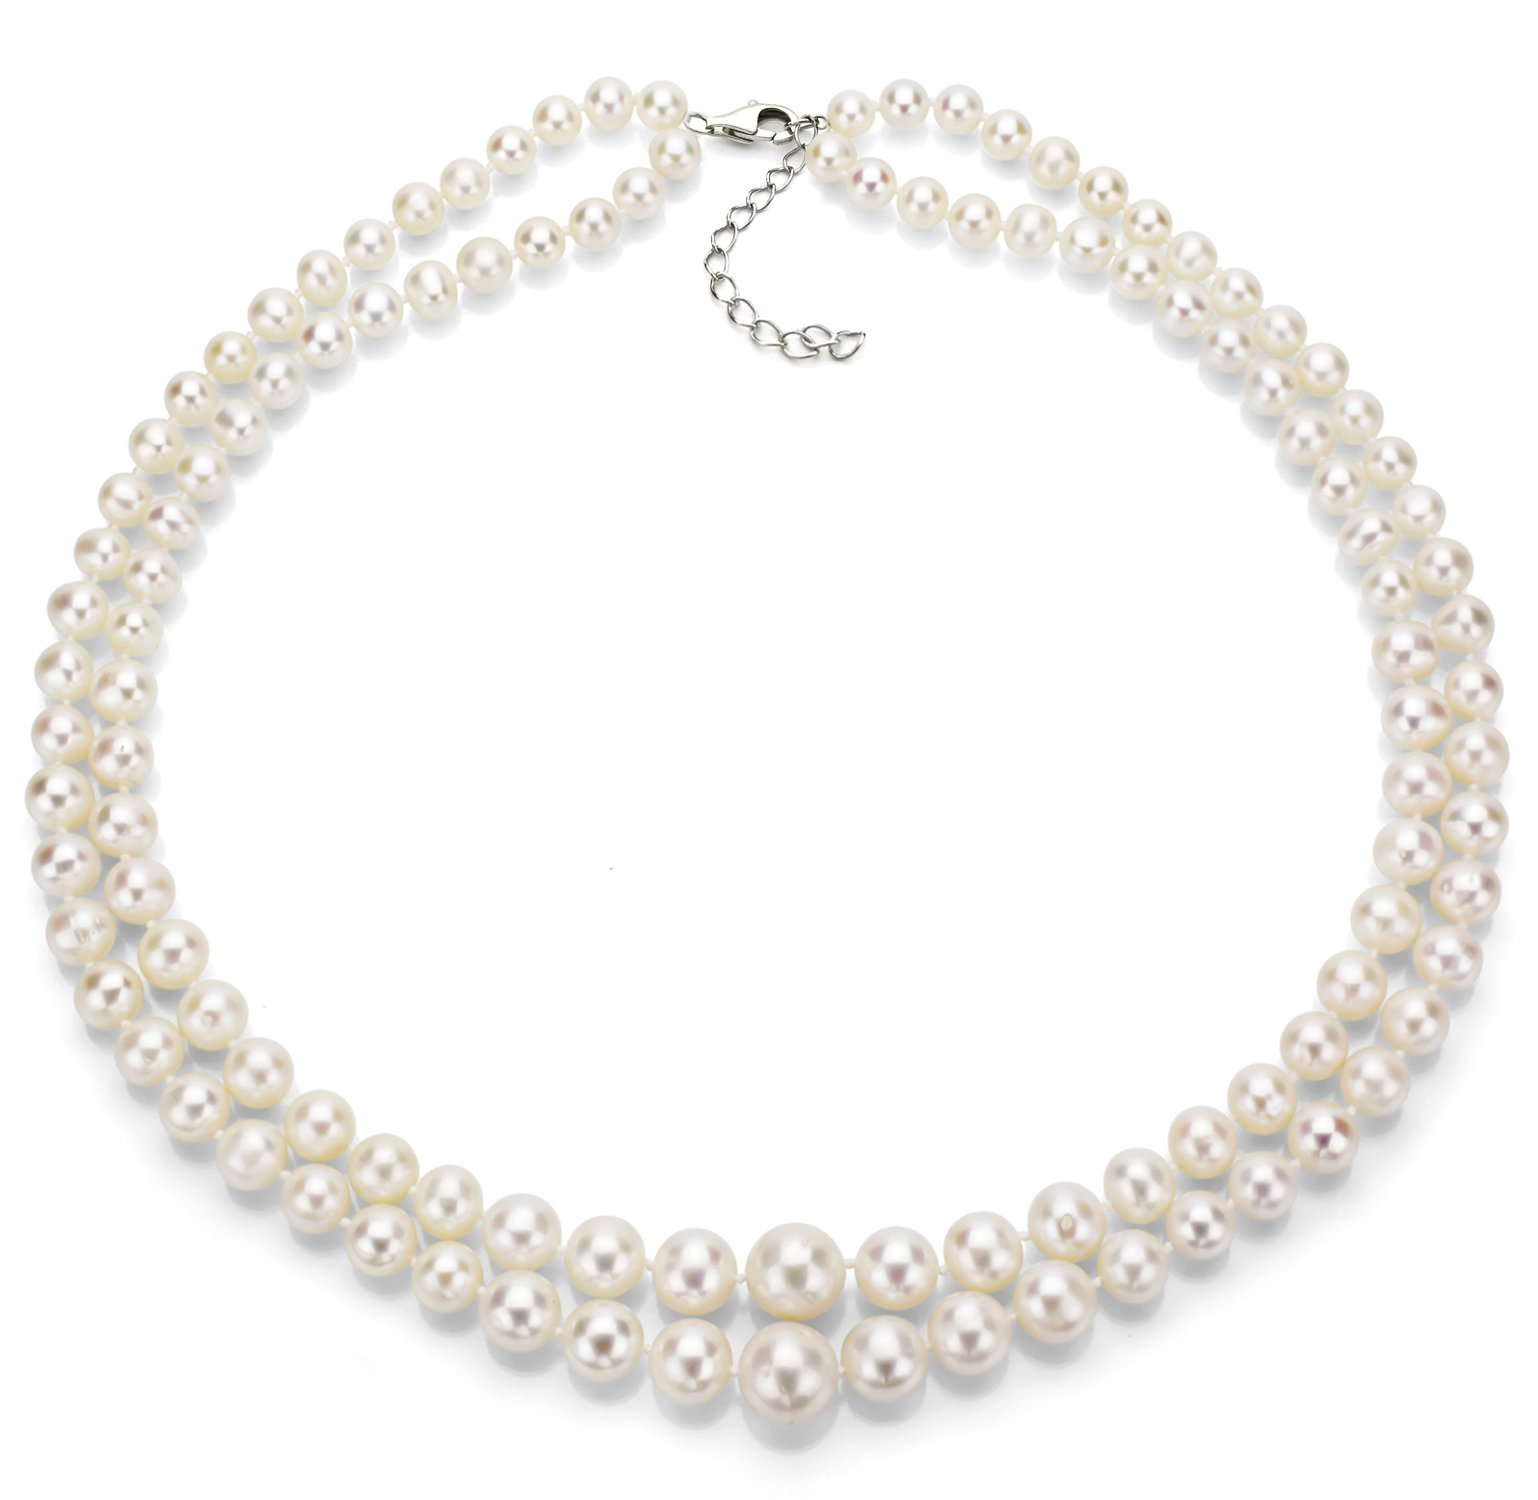 Sterling Silver Graduated 6-11mm 2-rows White Freshwater Cultured Pearl Necklace, 17'' + 1'' Extender